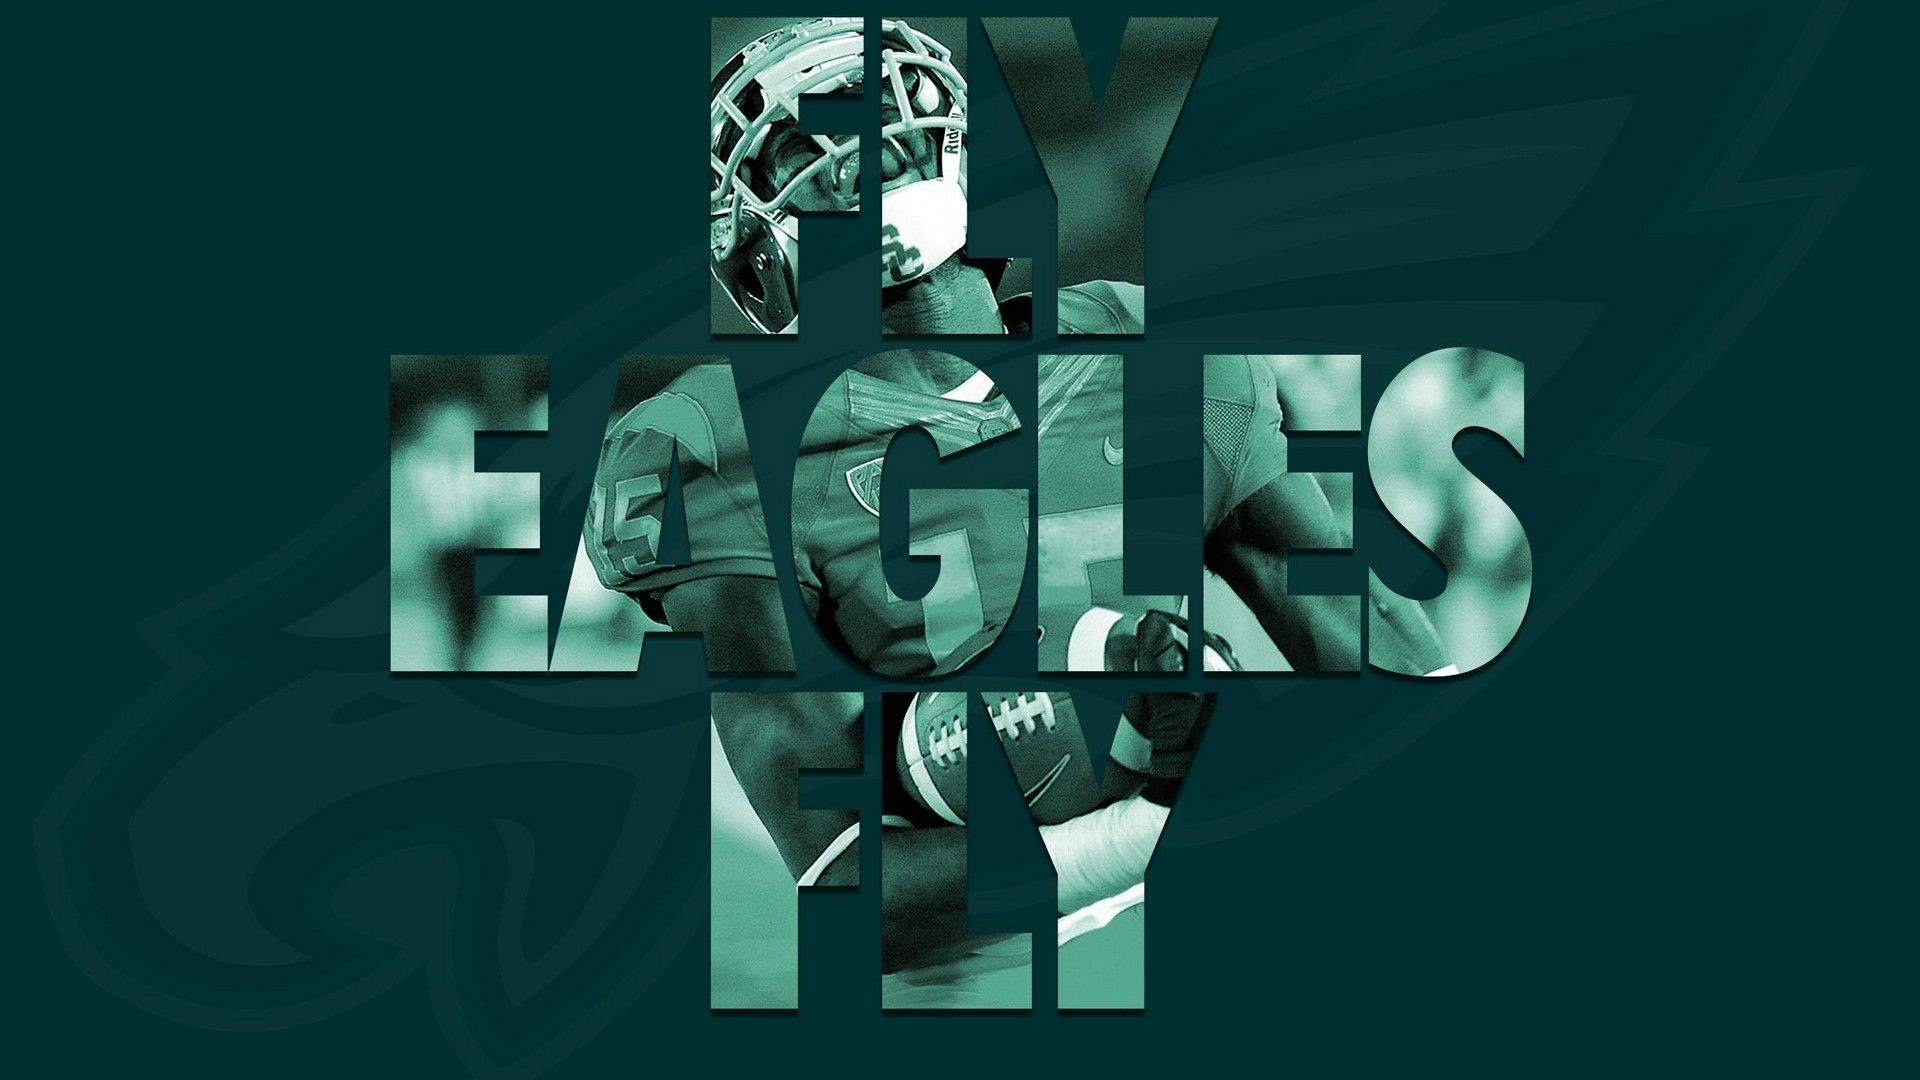 Eagles Desktop Wallpaper Philadelphia eagles wallpaper